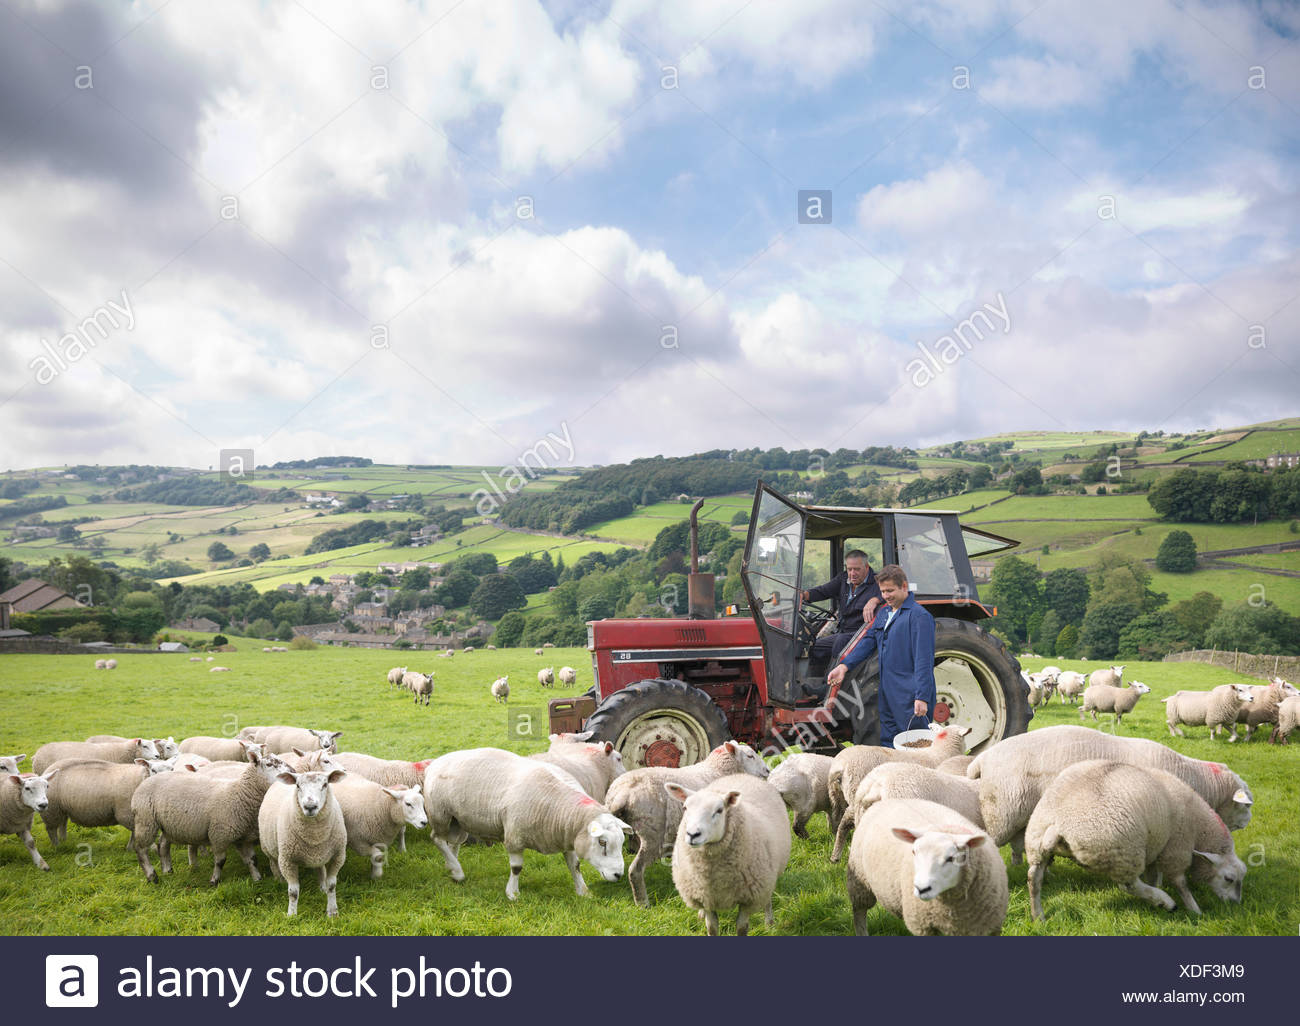 Agriculteur dans le tracteur avec son watching sheep in field Photo Stock